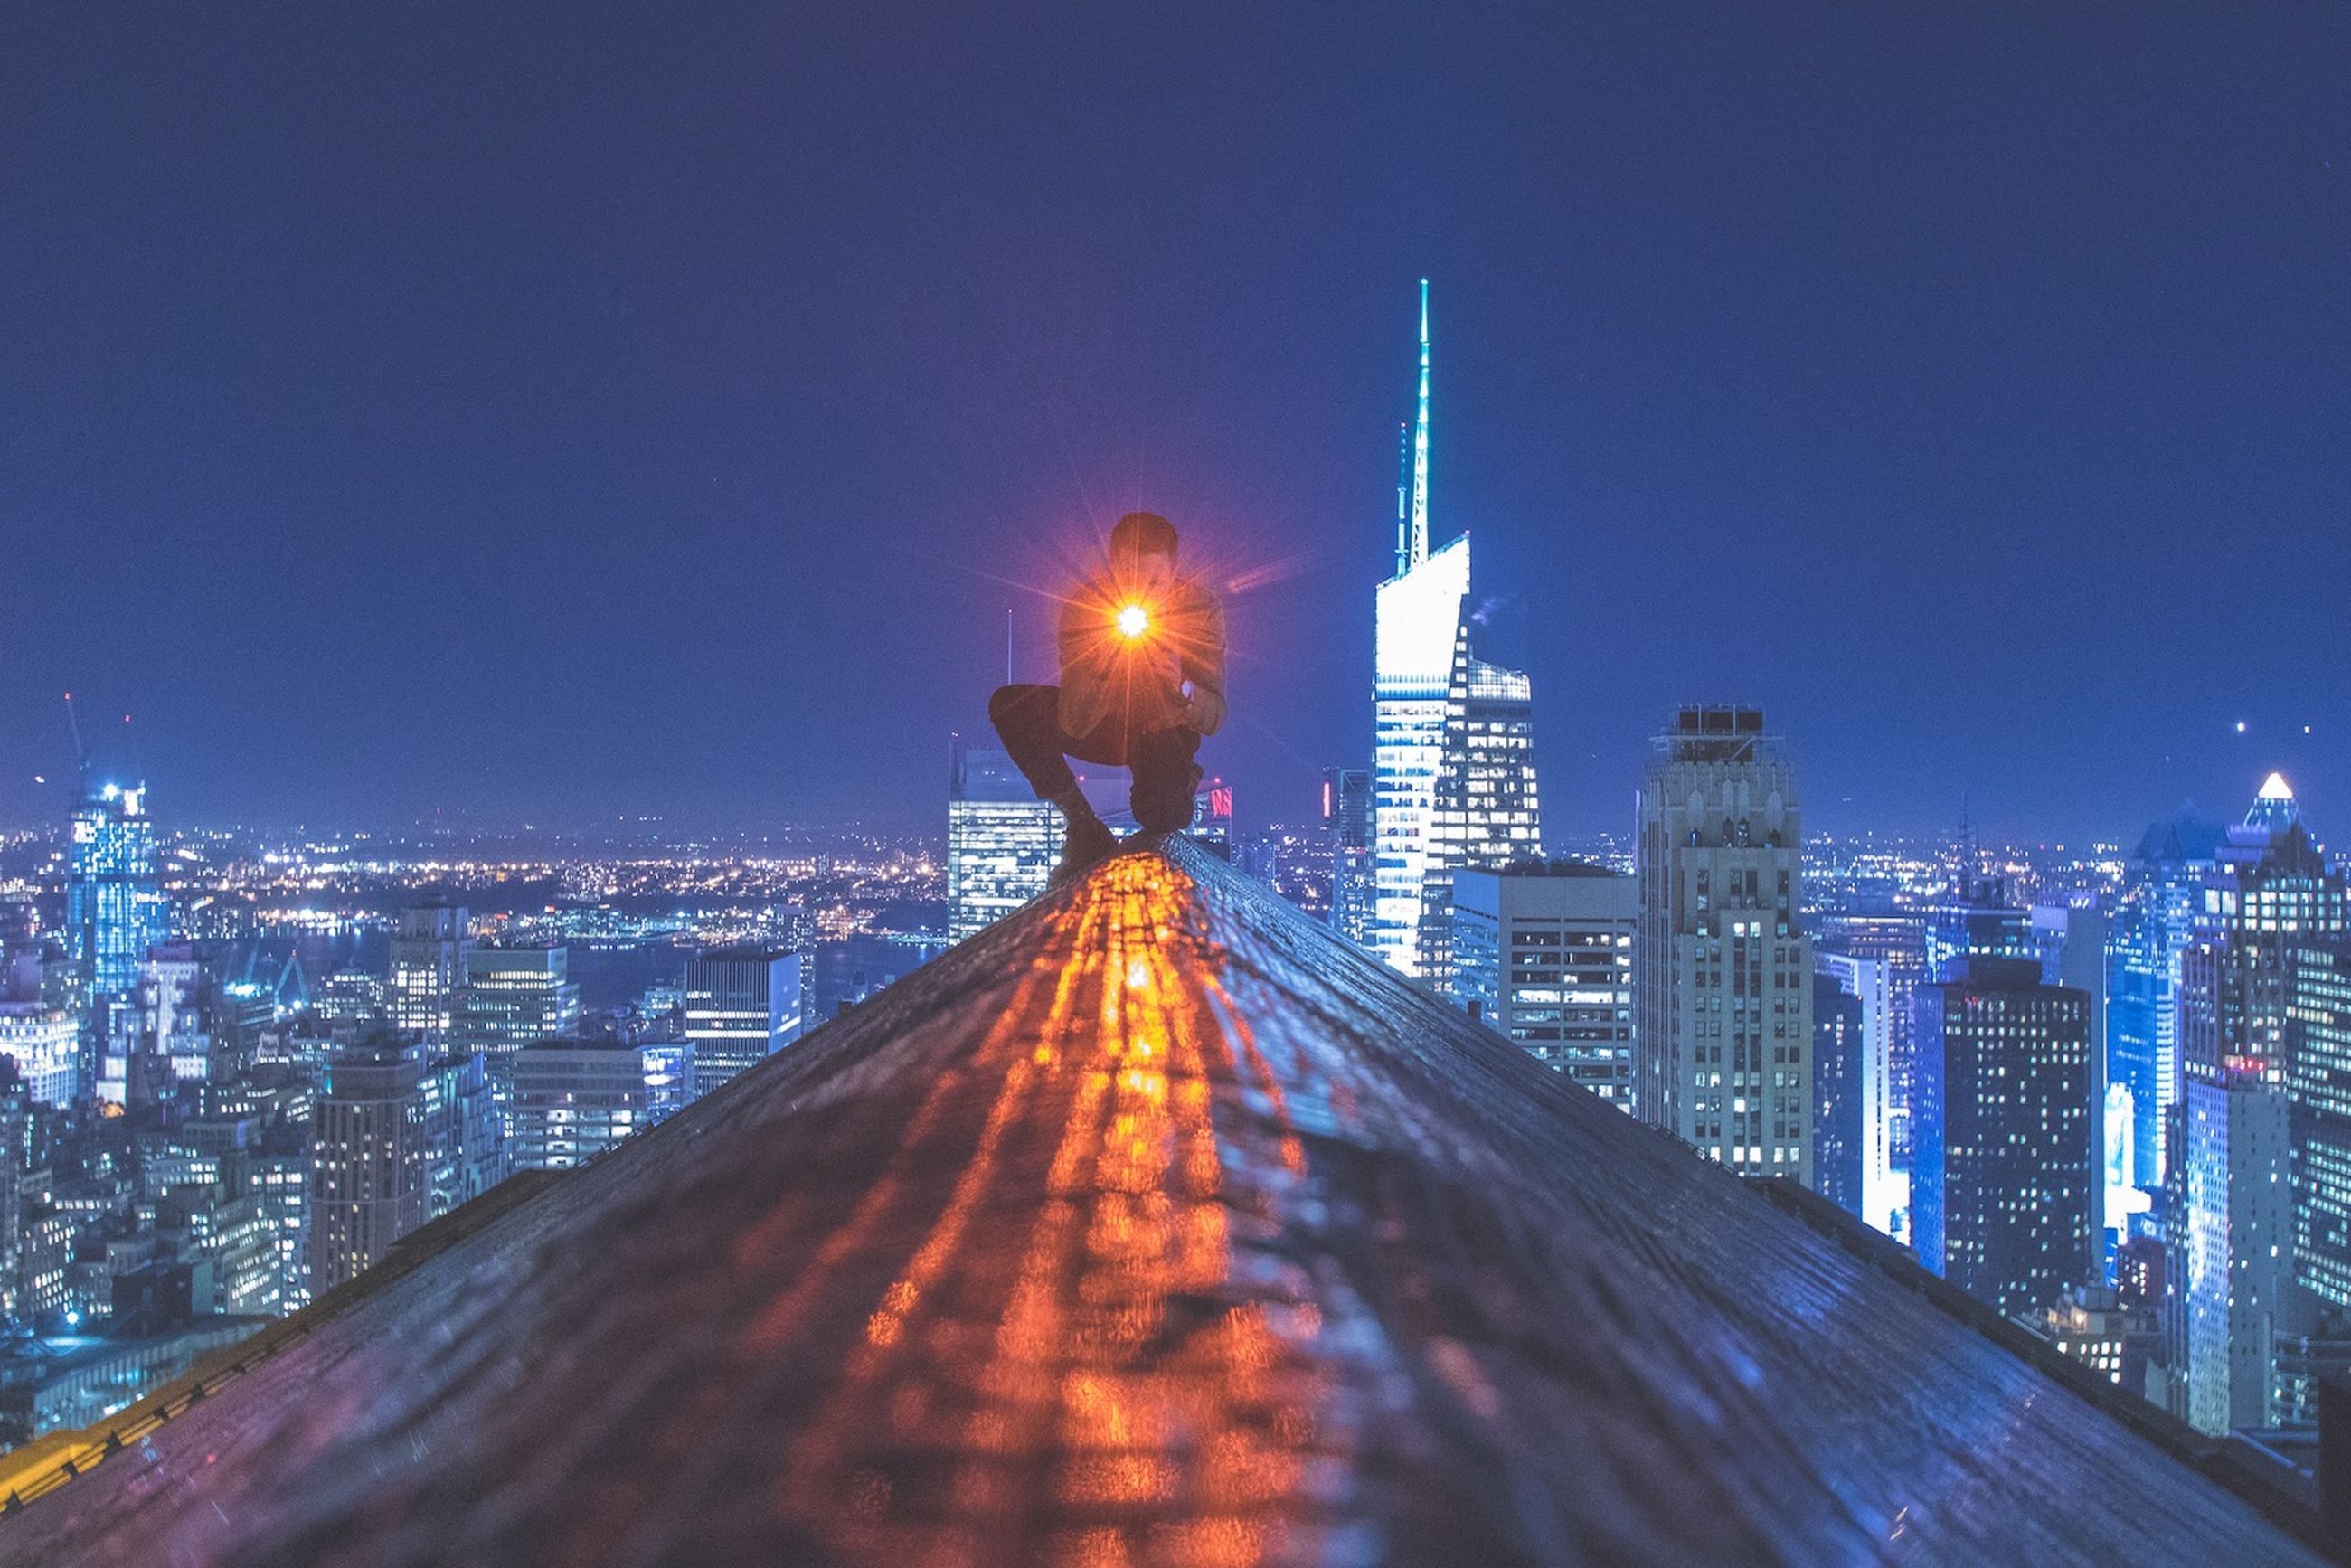 illuminated, architecture, built structure, city, building exterior, night, clear sky, cityscape, copy space, skyscraper, tall - high, blue, tower, the way forward, sky, capital cities, modern, street light, city life, bridge - man made structure